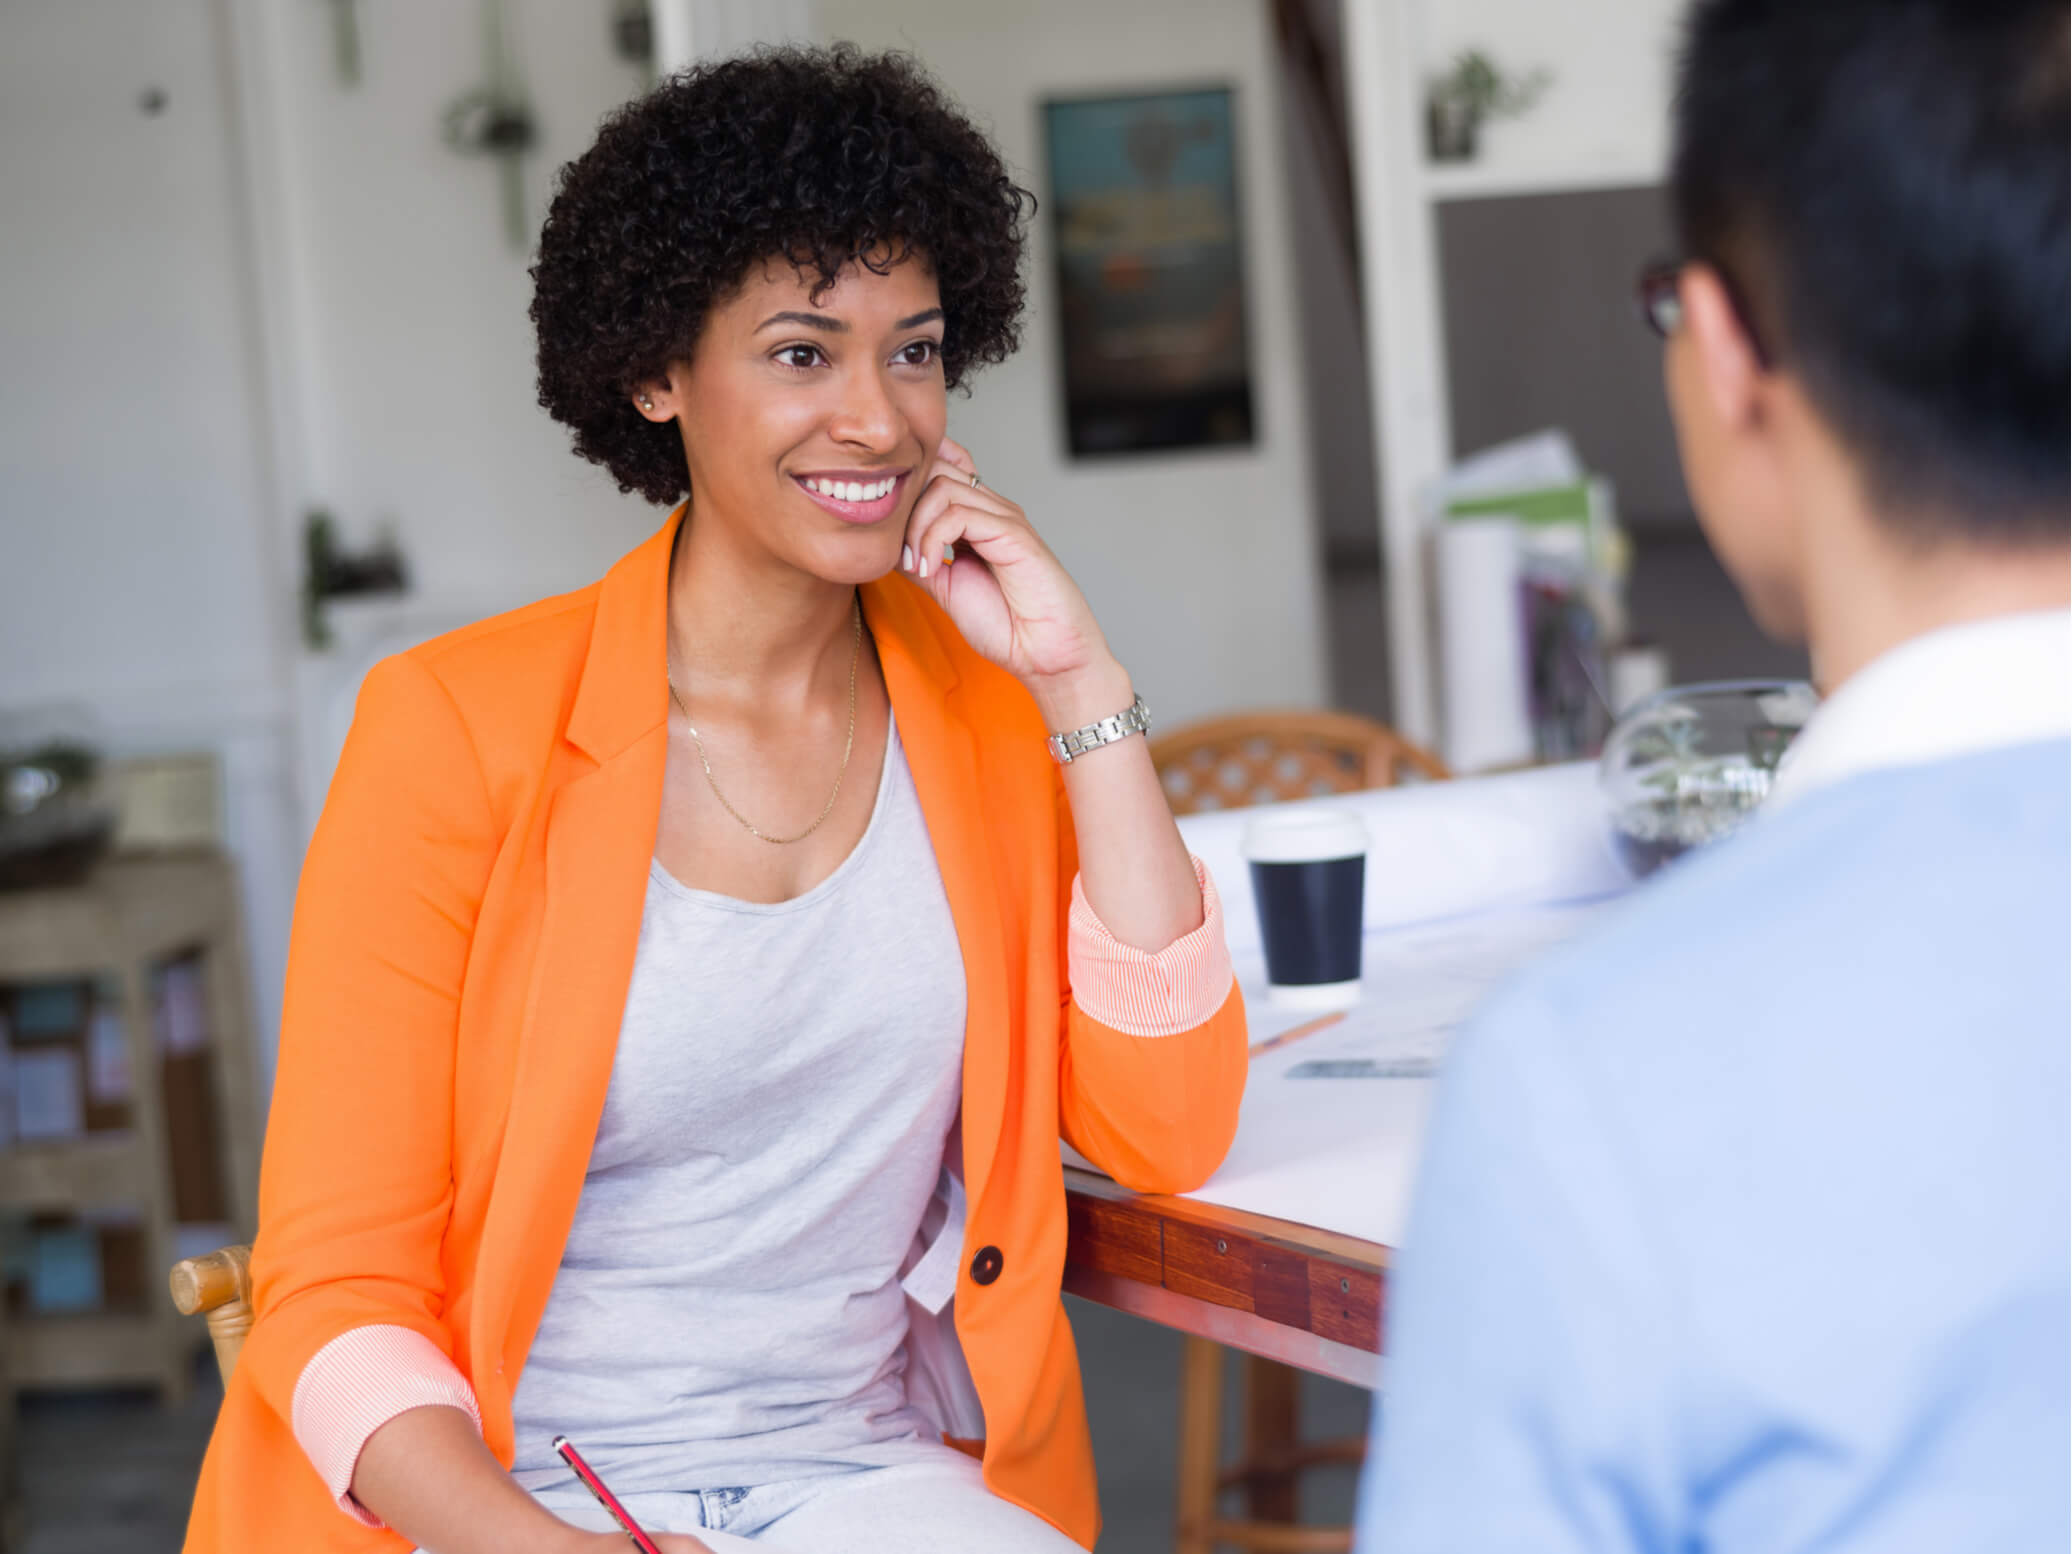 Make A Positive Impression When Interviewing Candidates